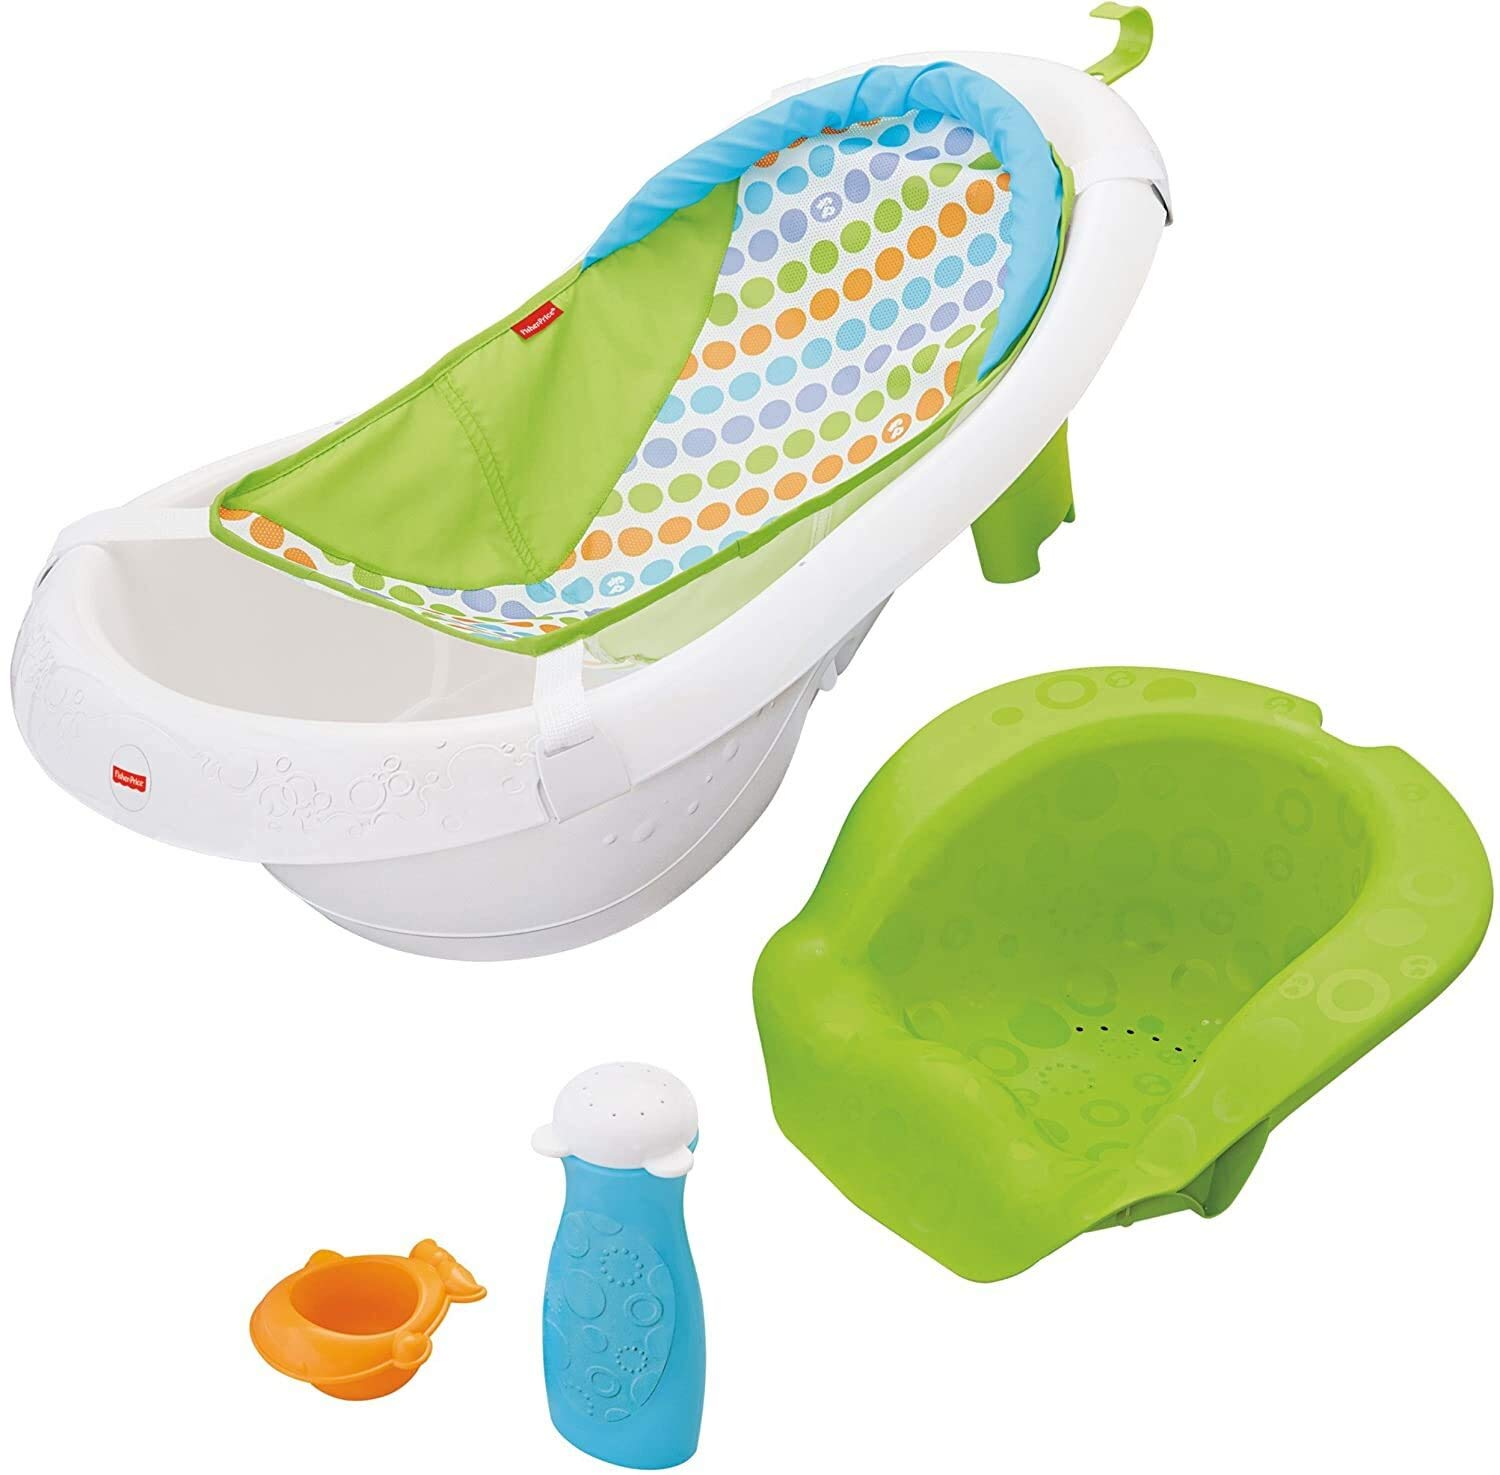 Fisher-Price 4-in-1 Sling n' Seat Tub